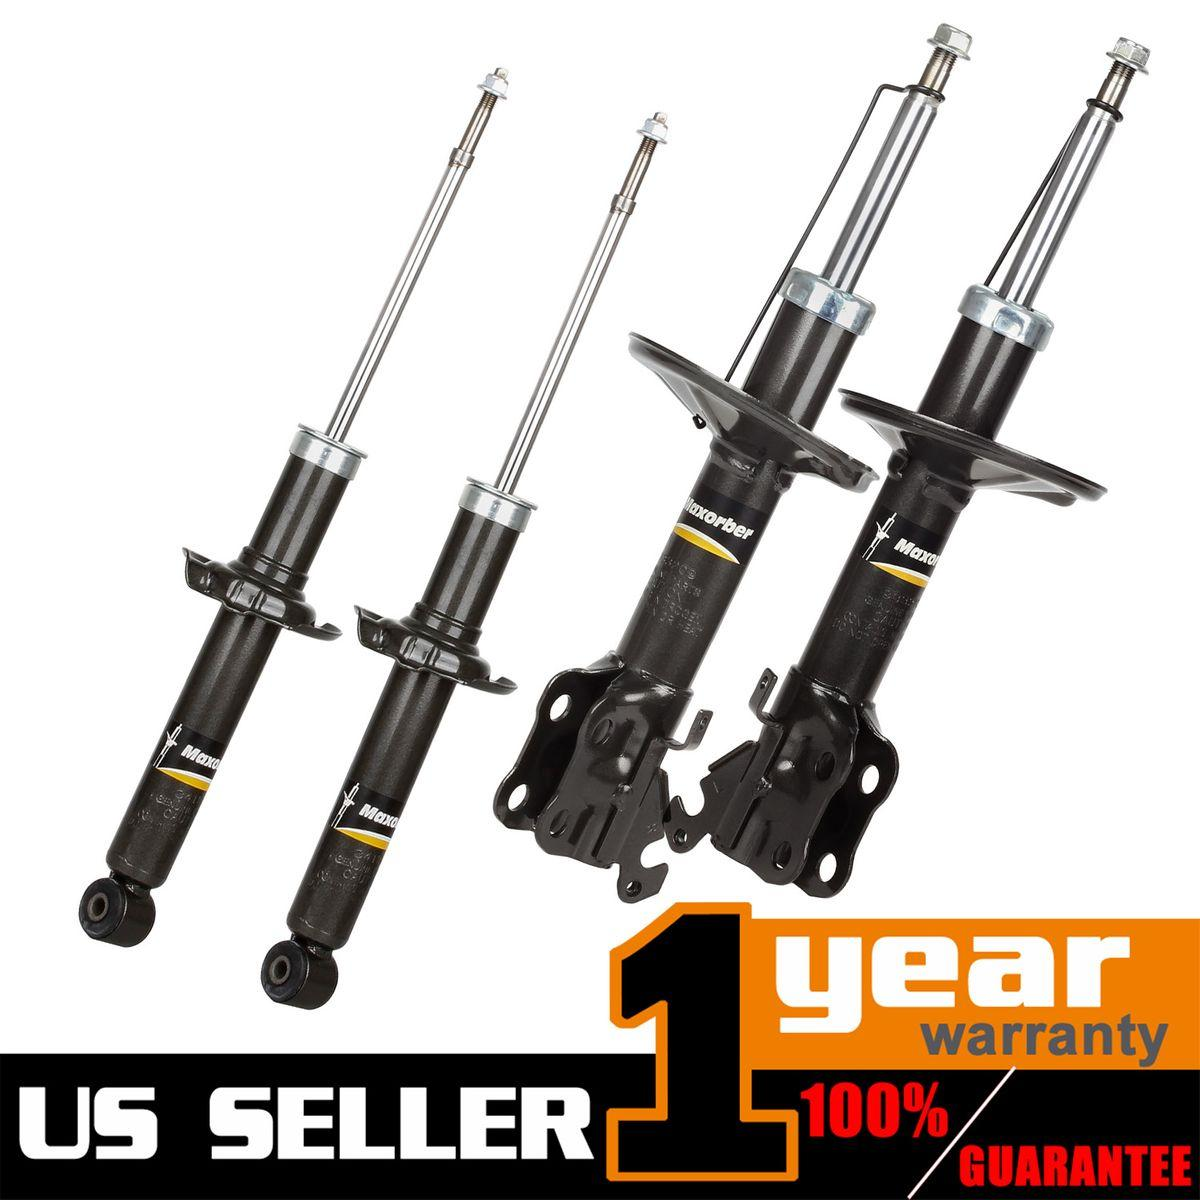 Toyota Celica 1995 1999 Shock Absorbers And Struts: NEW Qty (4) Full Set Shocks Struts Absorber Fits 1995-1999